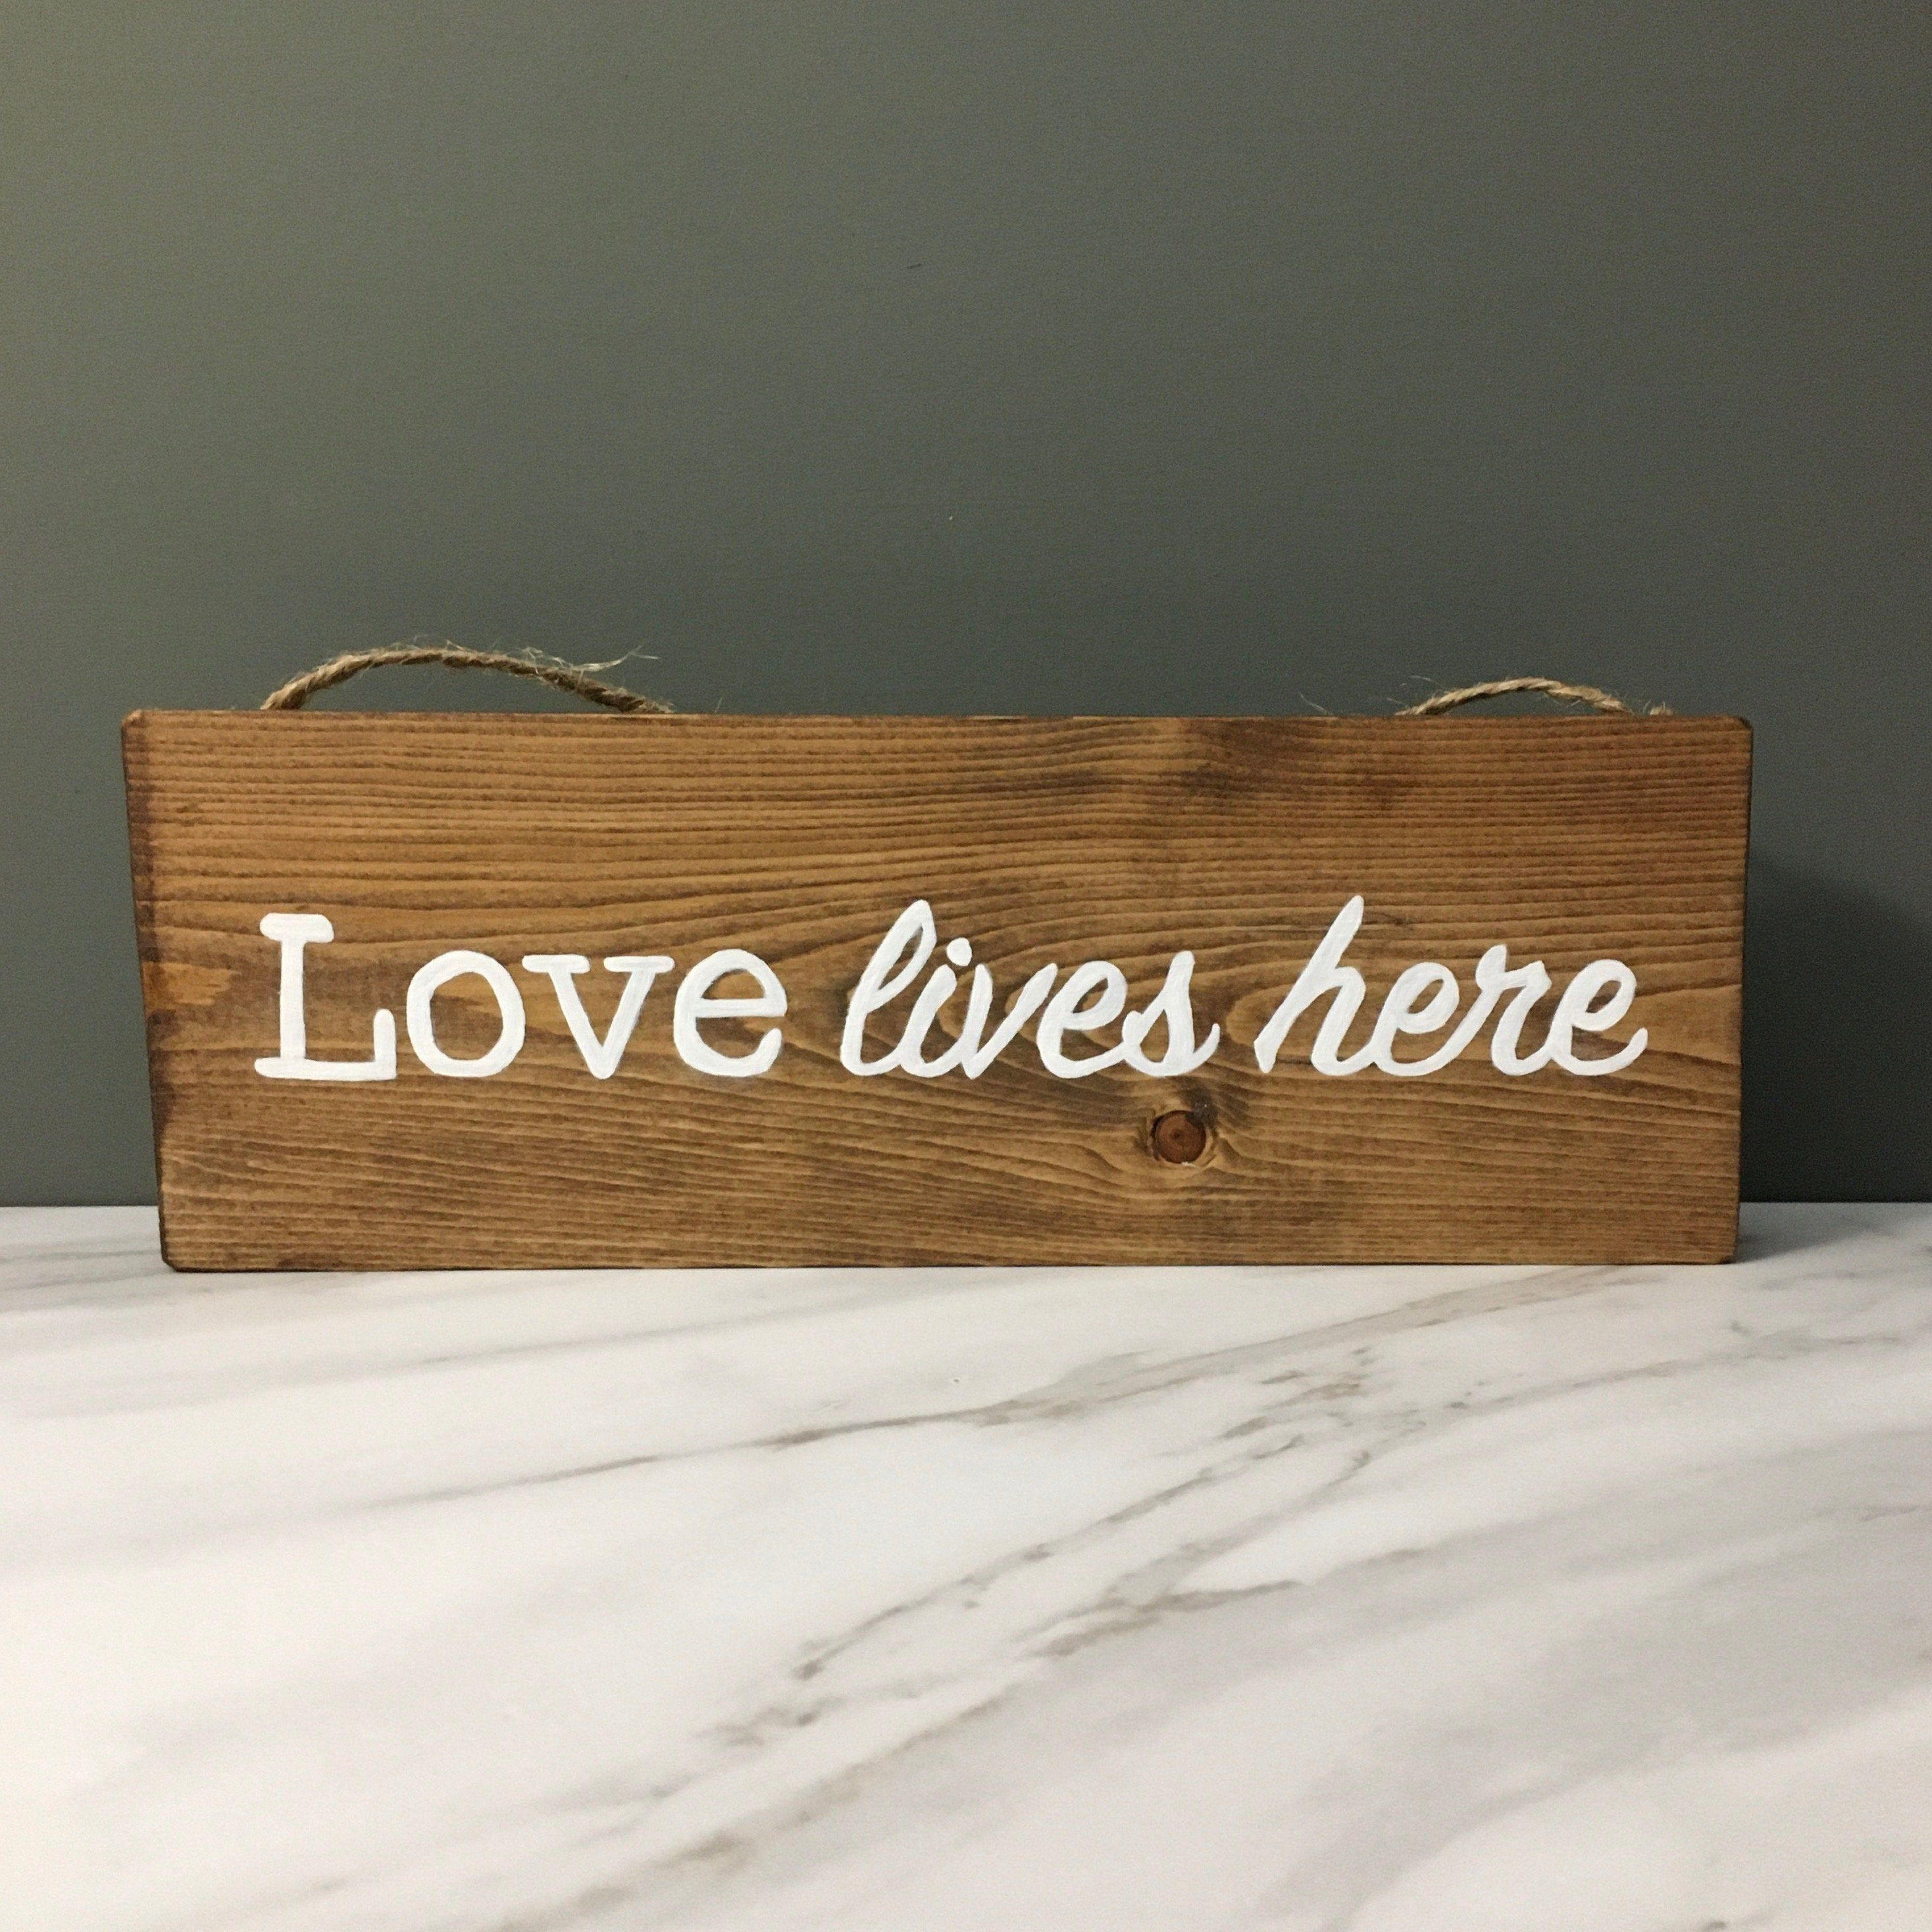 Love Lives Here Wood Sign Living Room Wall Decor Farmhouse Wood Sign Love Wall Decor Farmhouse Wall Decor Love Sign Housewarming Gift In 2020 Farmhouse Wall Decor Wood Signs Love Wall